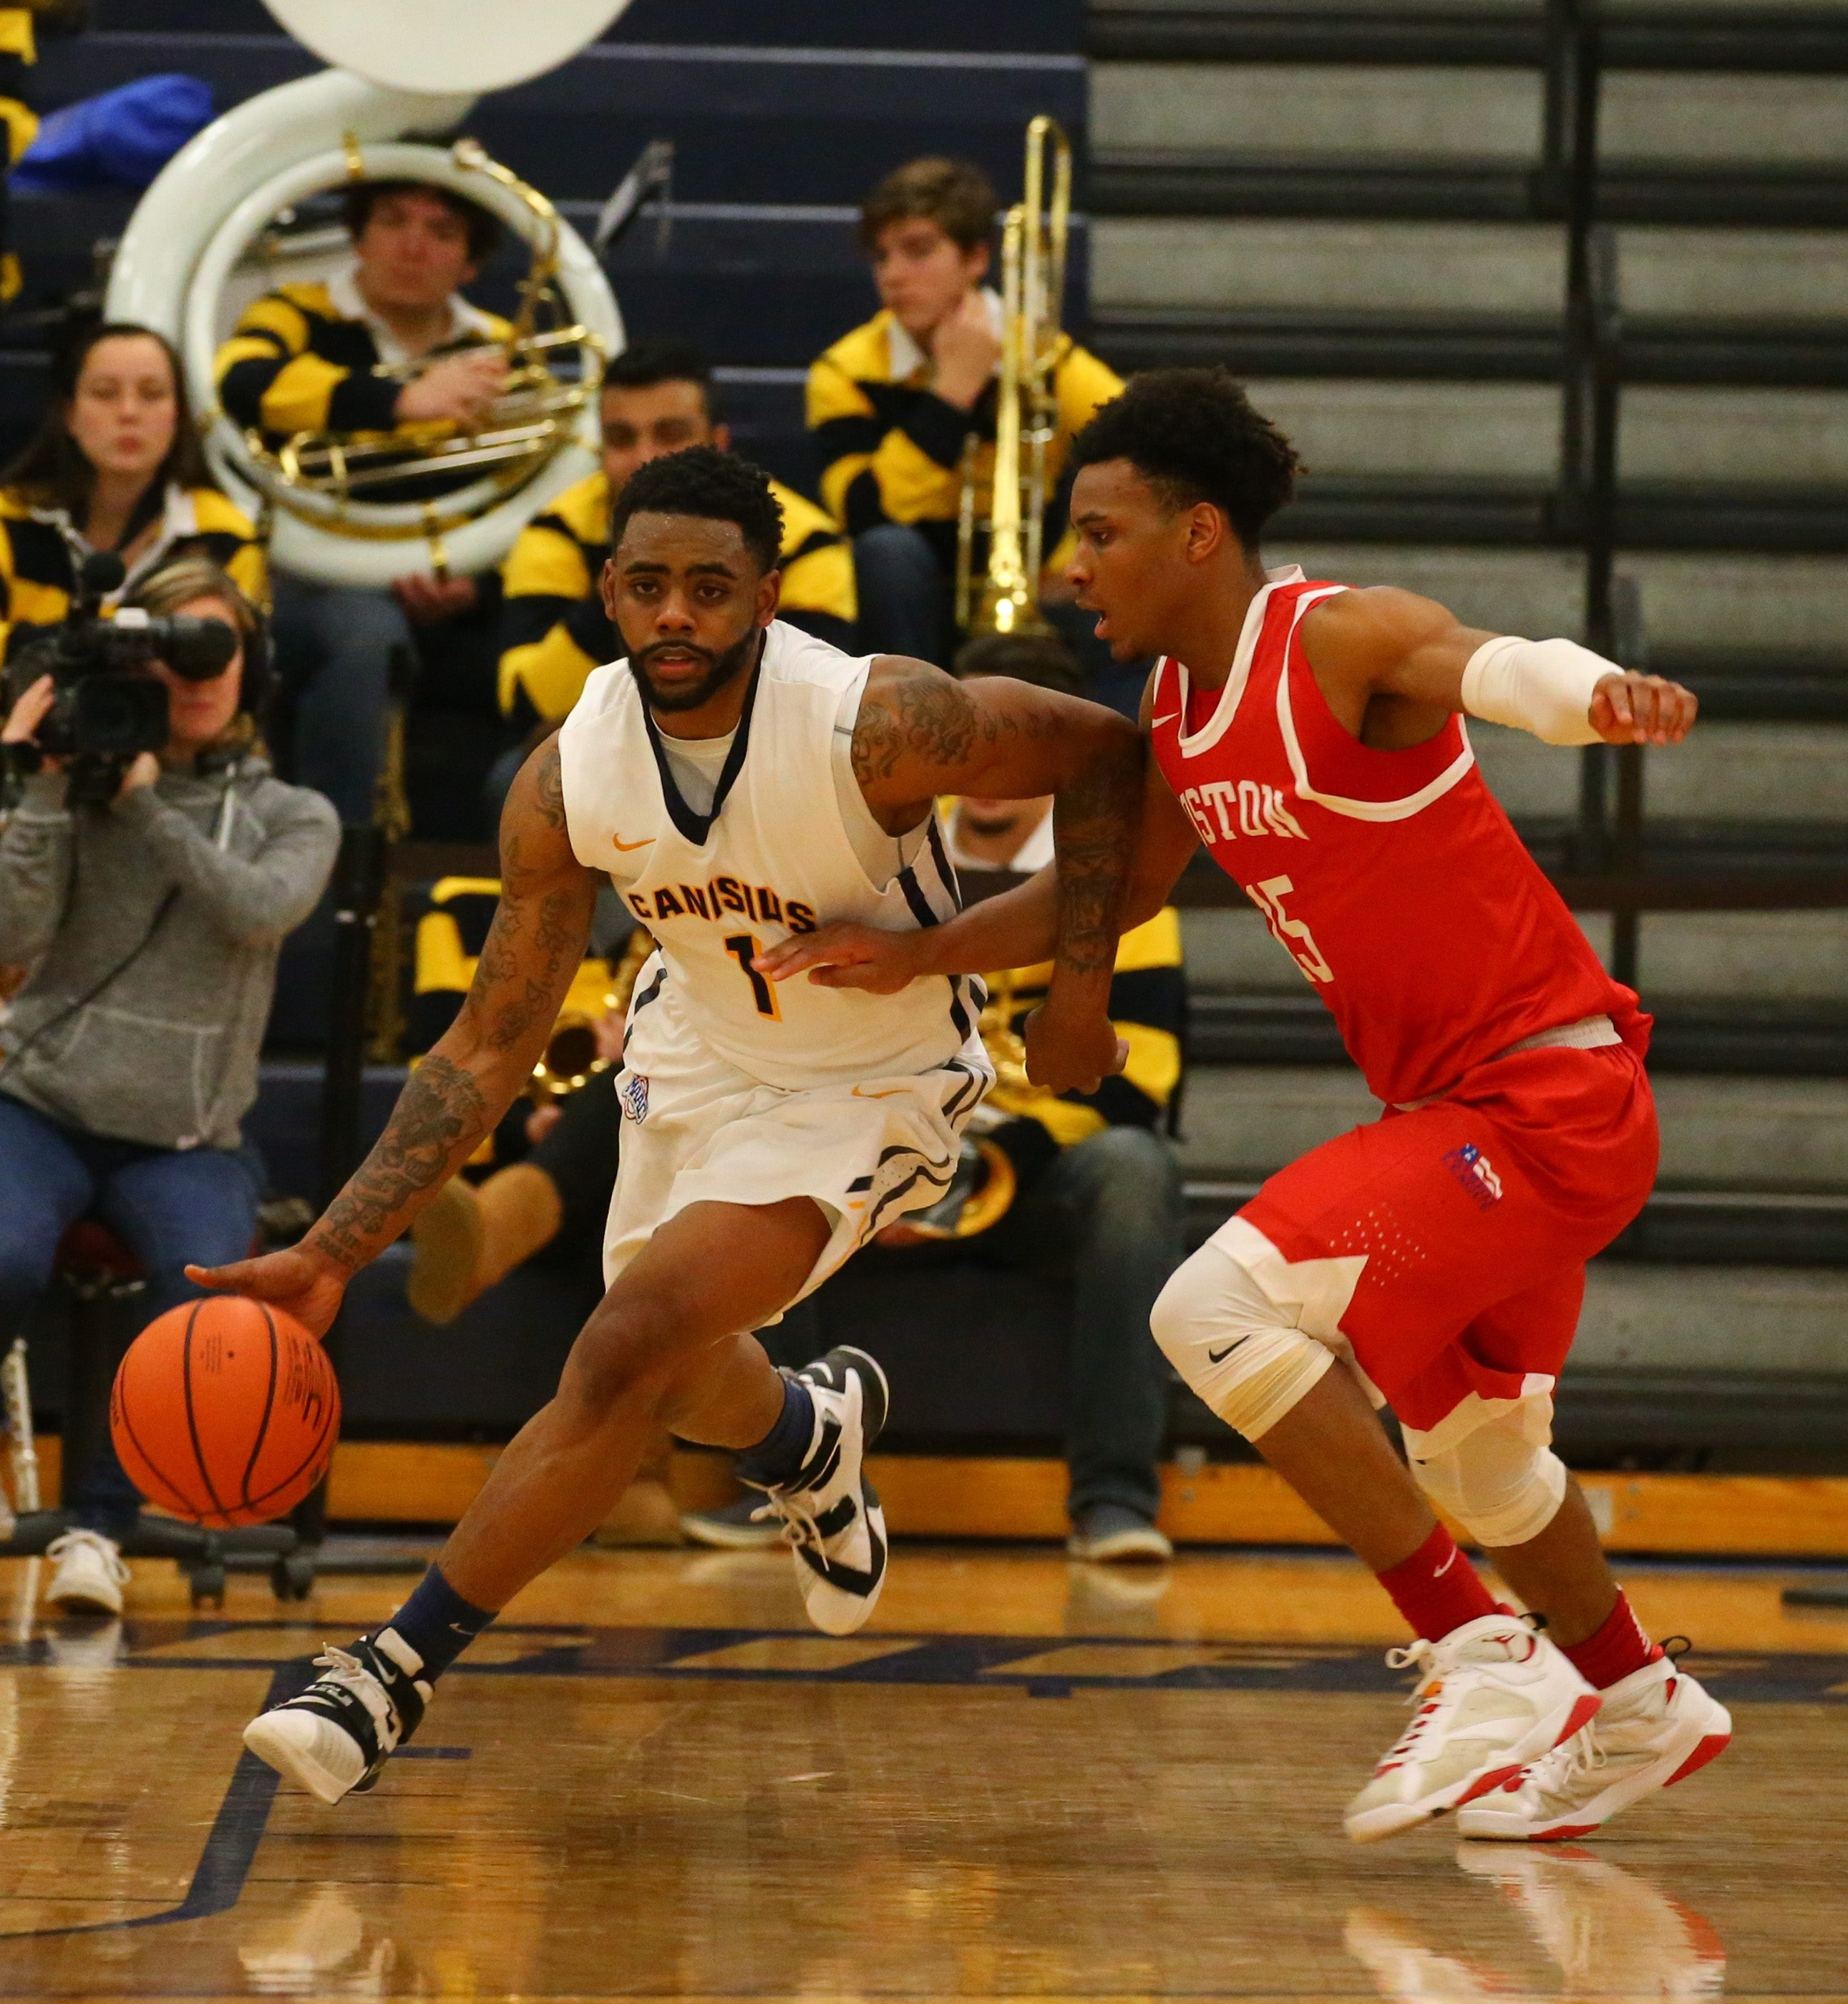 Canisius' Malcolm McMillan works the ball upcourt against Boston University's Cheddi Mosely during Saturday's game at the Koessler Center.